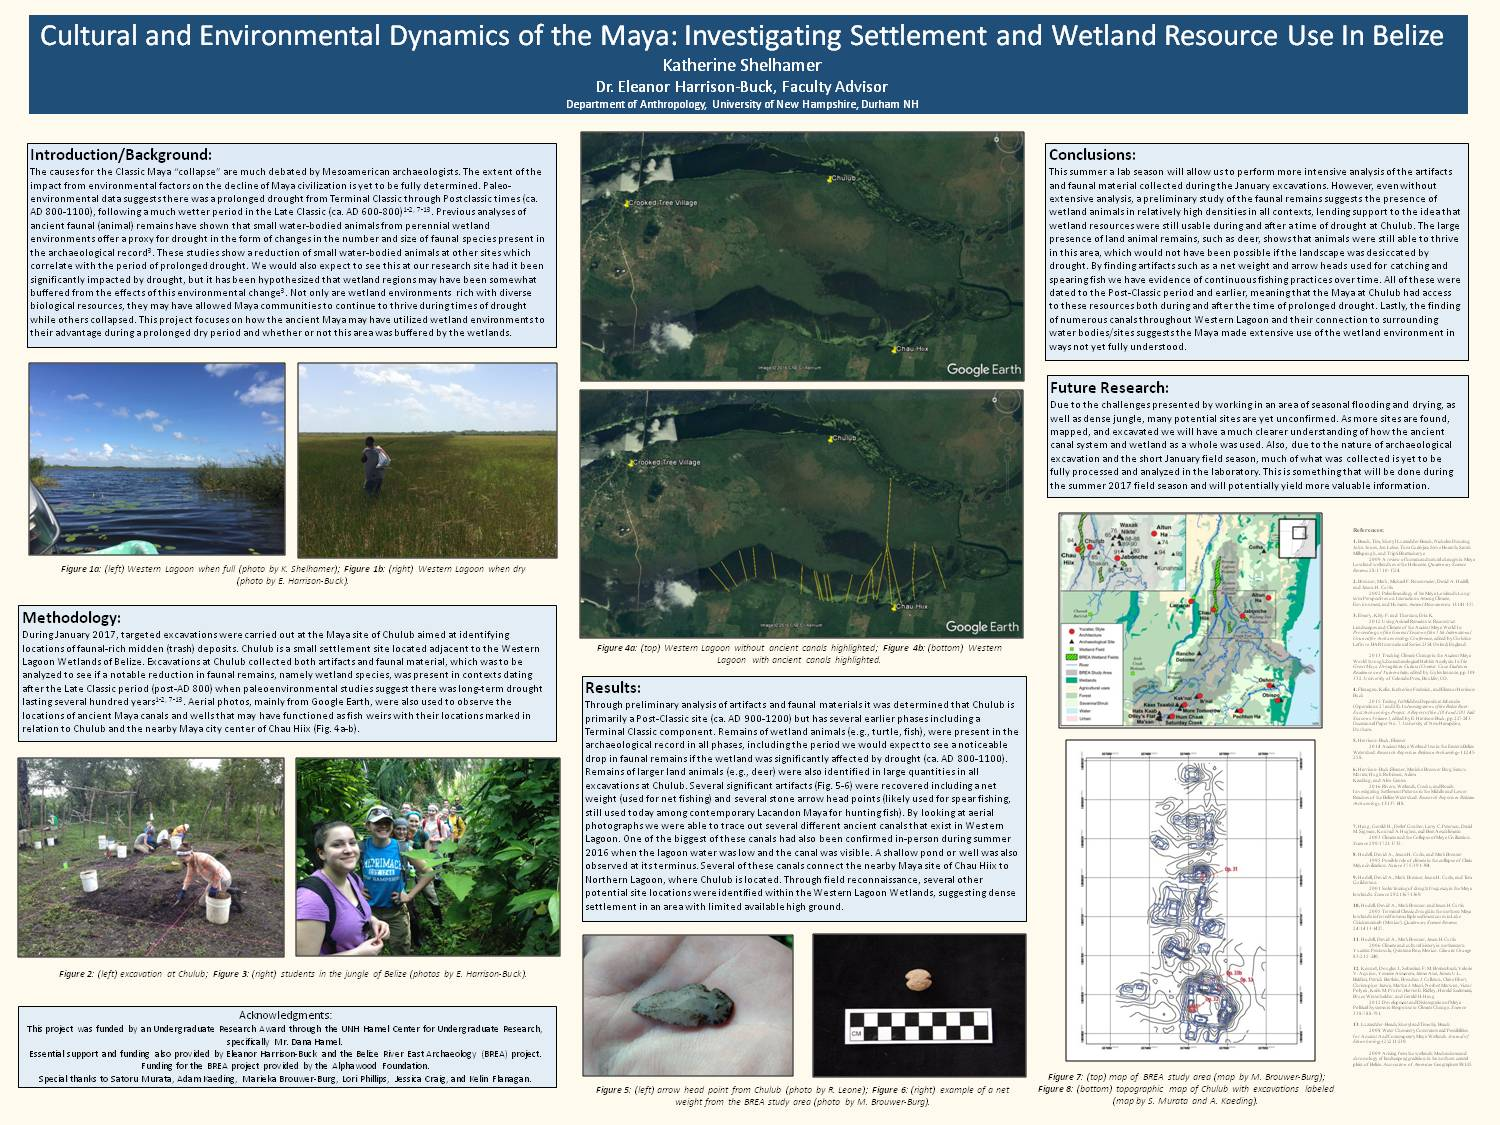 Cultural And Environmental Dynamics Of The Maya: Investigating Settlement And Wetland Resource Use In Belize by kas2023